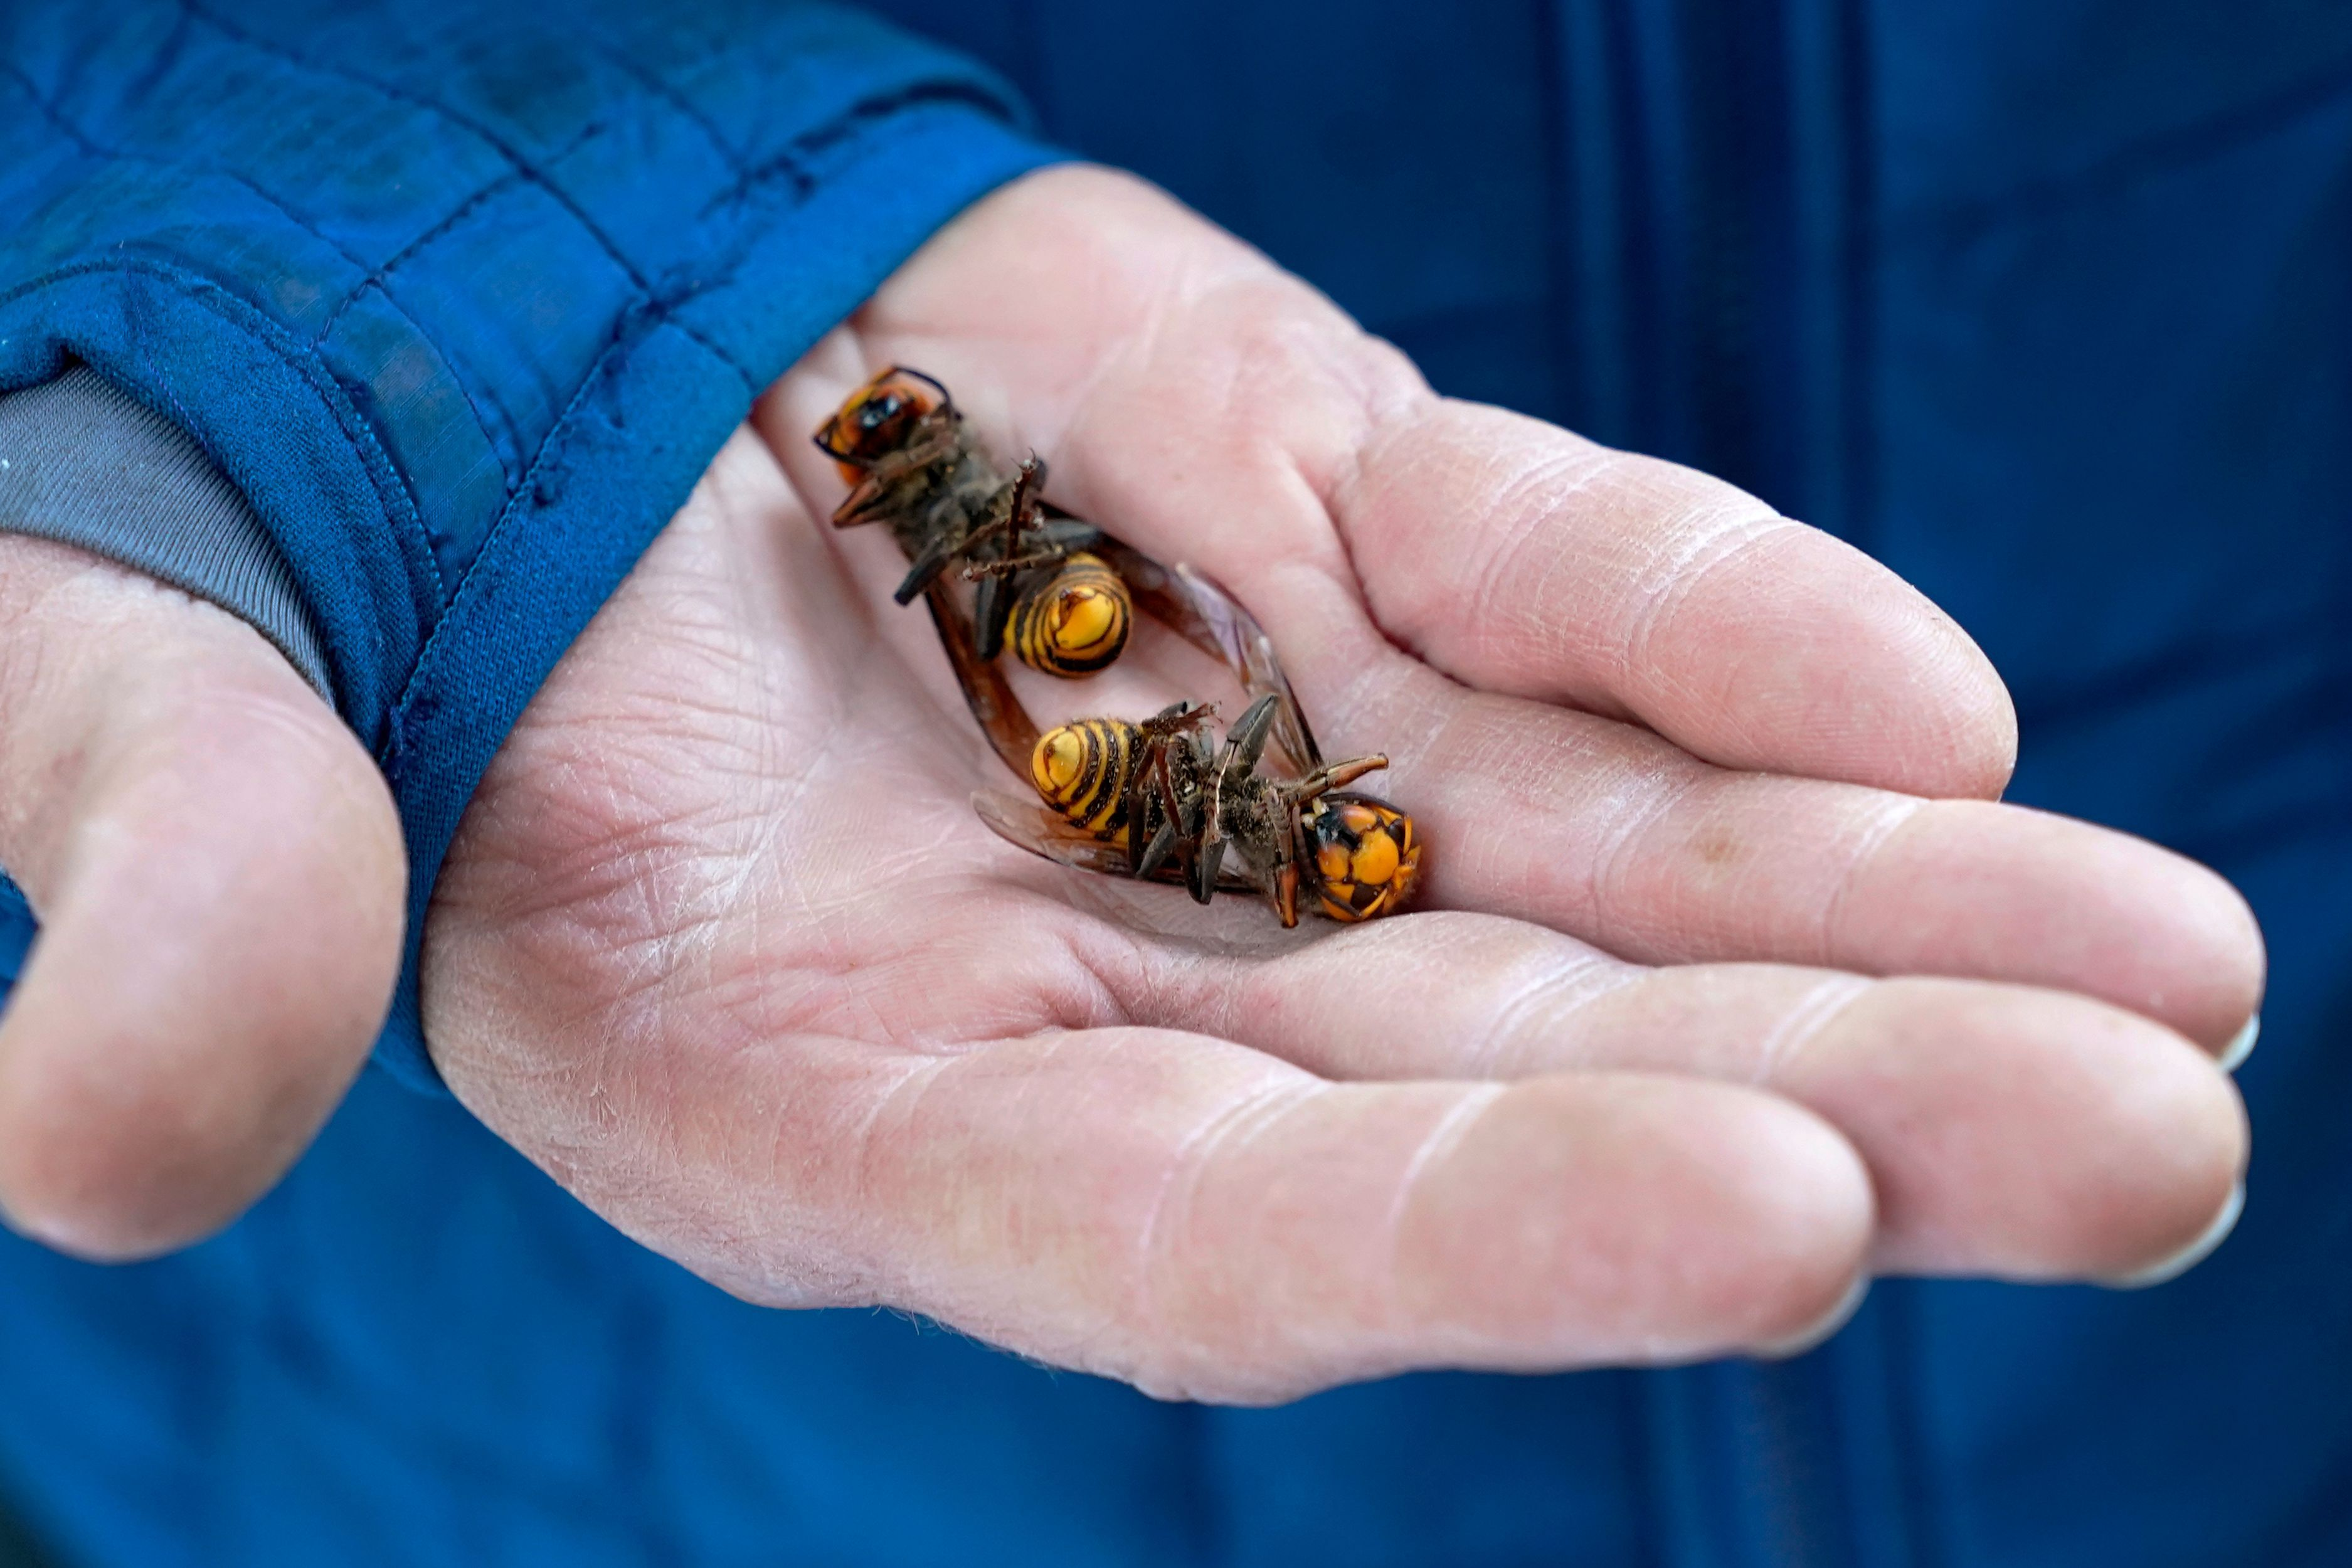 A Washington State Department of Agriculture workers holds two of the dozens of Asian giant hornets vacuumed from a tree on October 24, 2020, in Blaine, Washington.